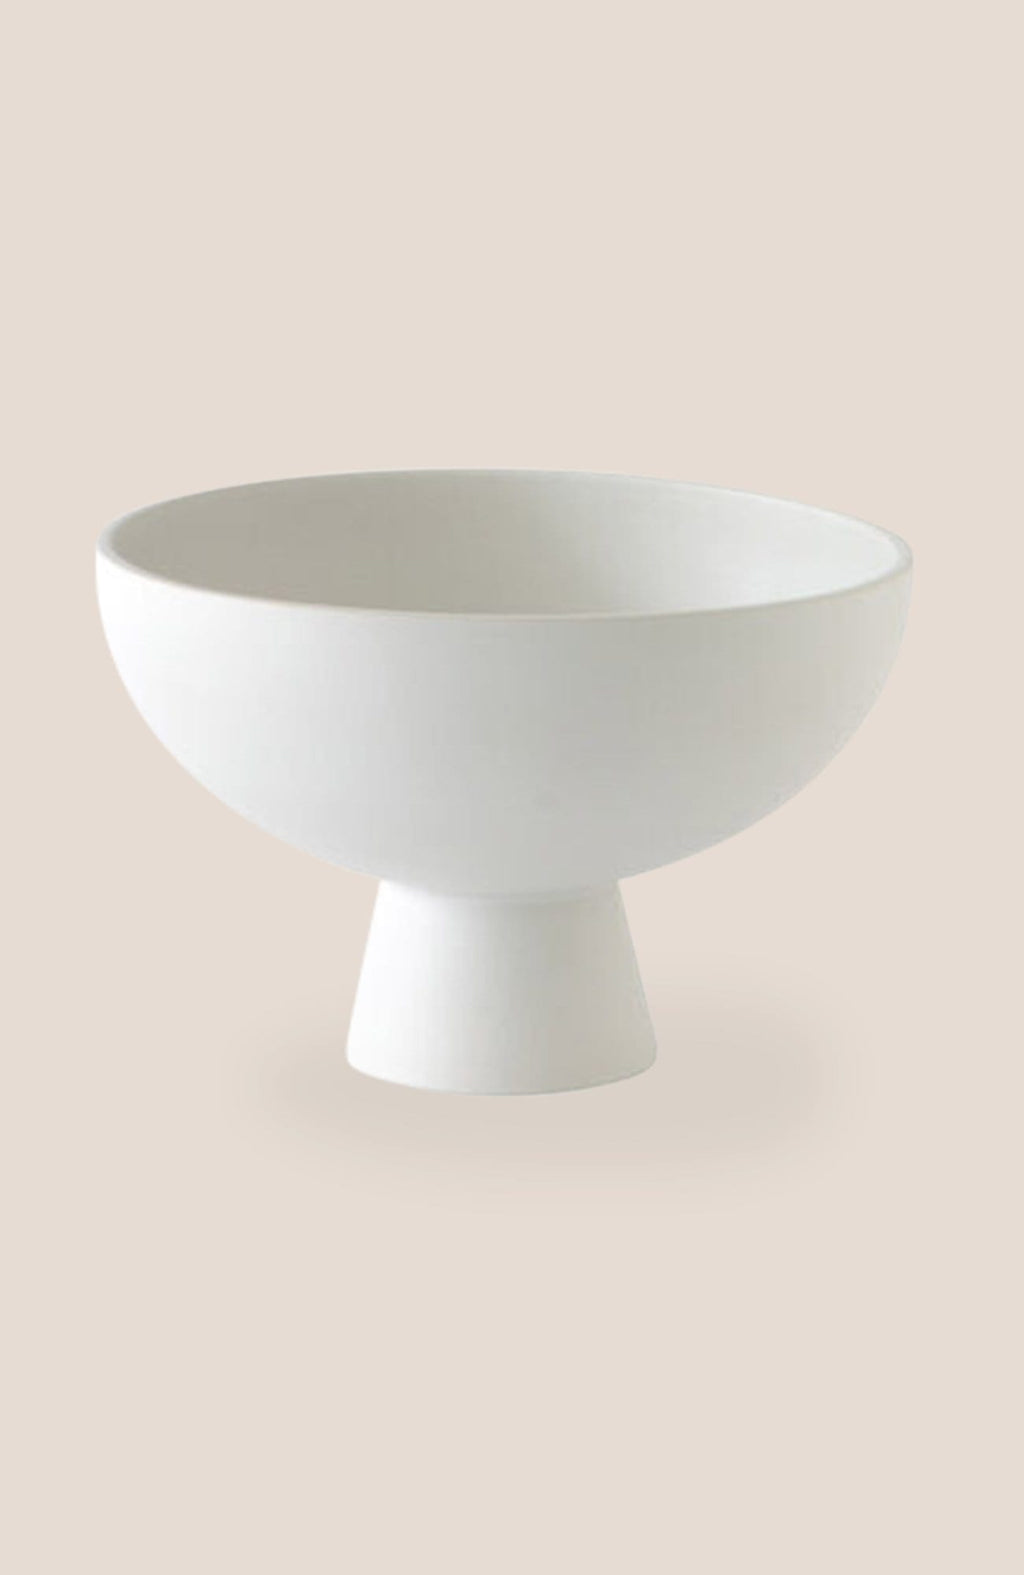 "Raawii Strøm Bowl - Vaporous White 4h x 6""diam - Home Decor 